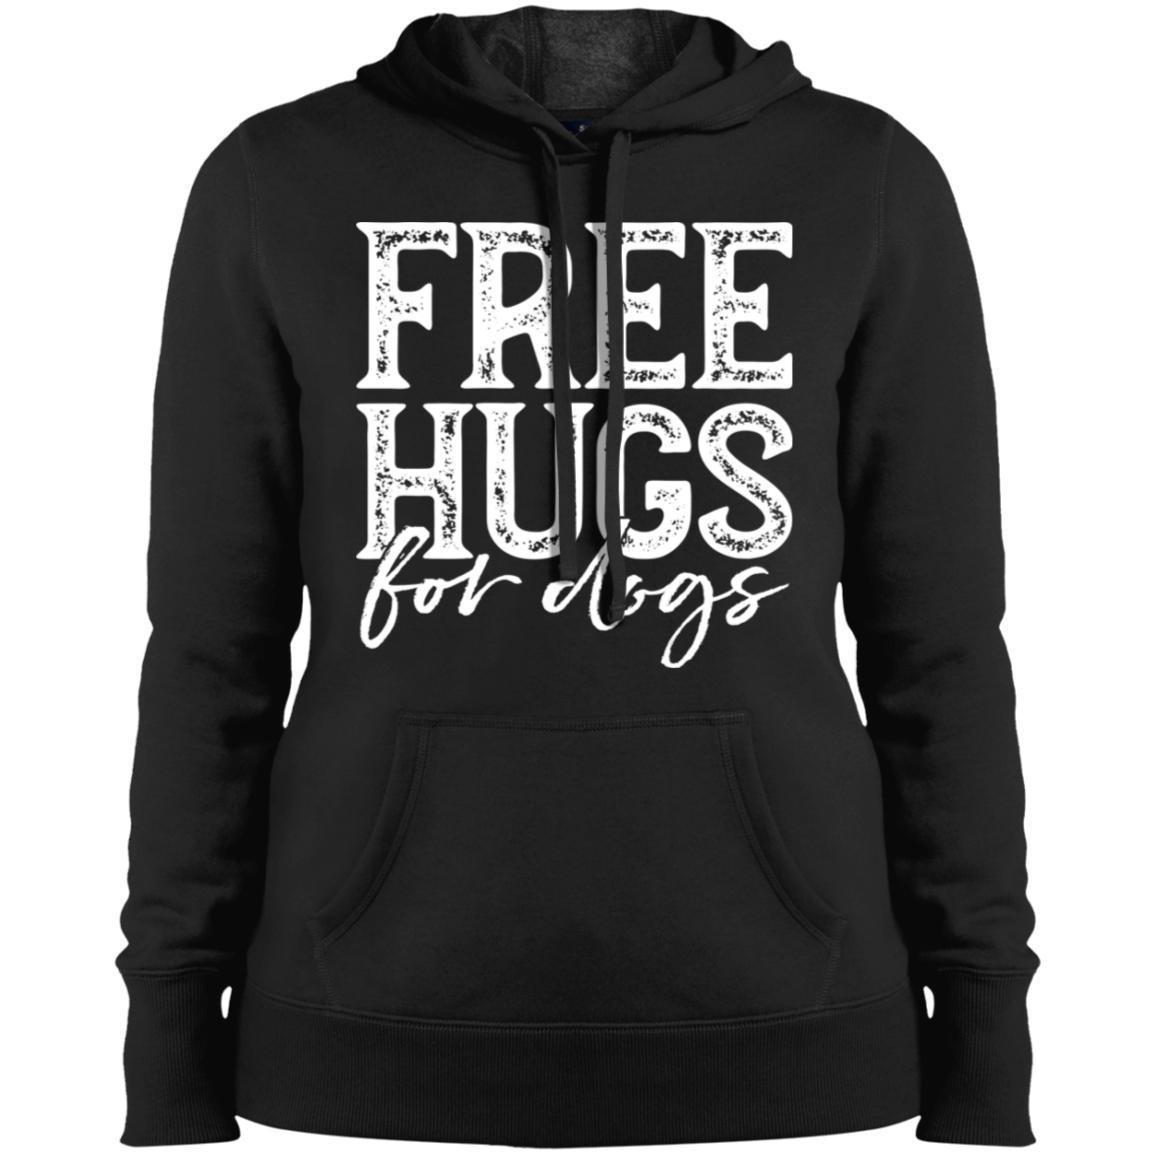 Free Hugs For Dogs Hoodie For Women